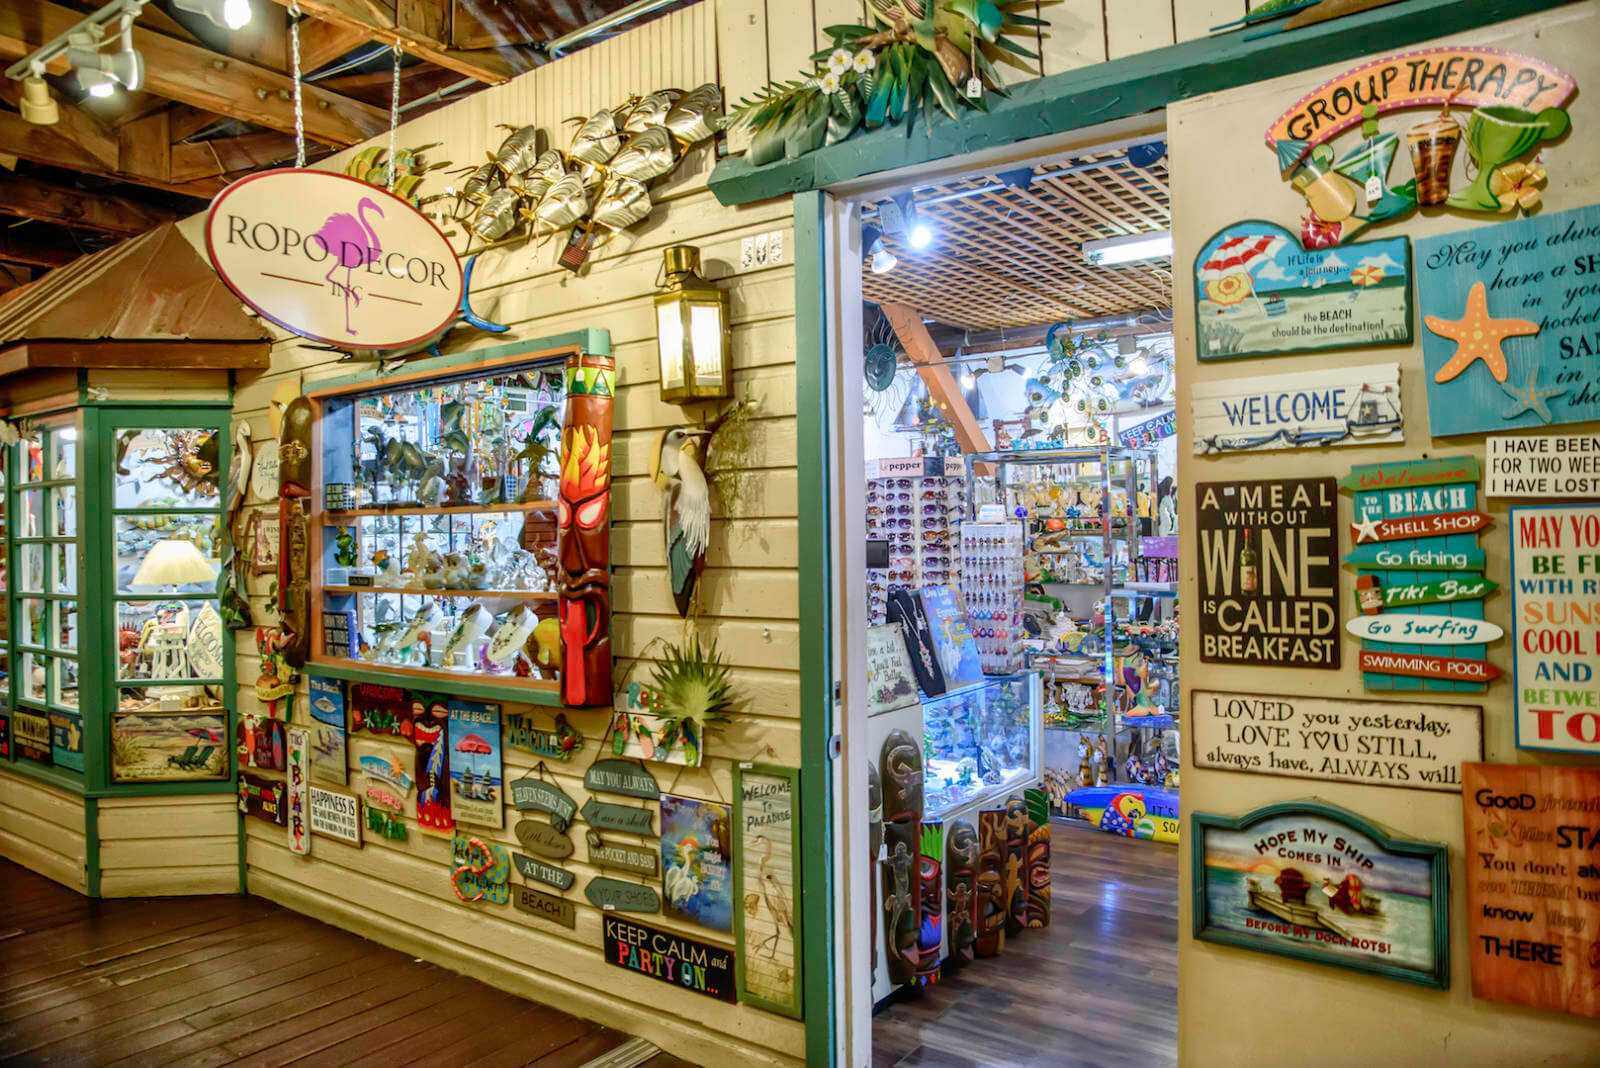 The converted fishing hub Tin City is a great stop on a rainy day. Walk through the maze of 30 shops, restaurants, and attractions. All the shops are locally owned and stock unique souvenirs and treasures. Photo by Jennifer Brinkman. | MustDo.com